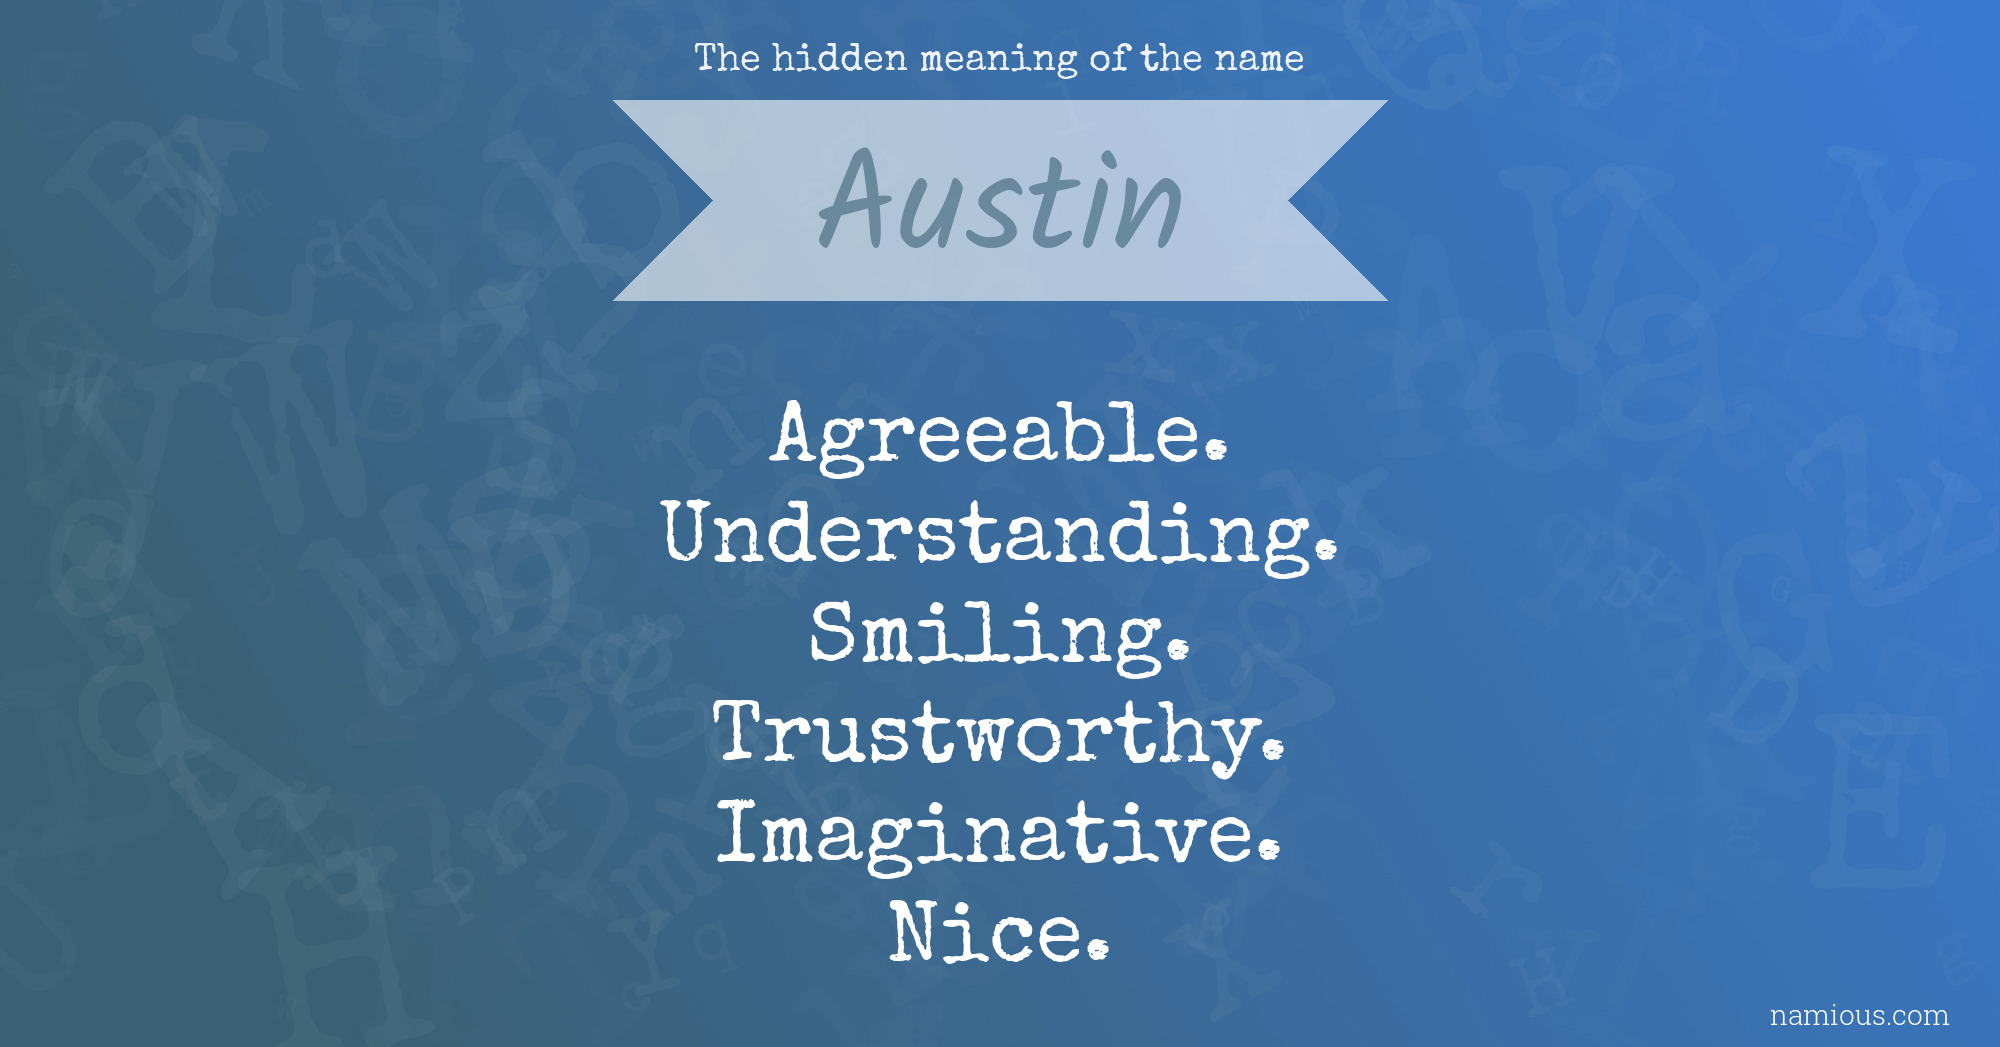 The hidden meaning of the name Austin